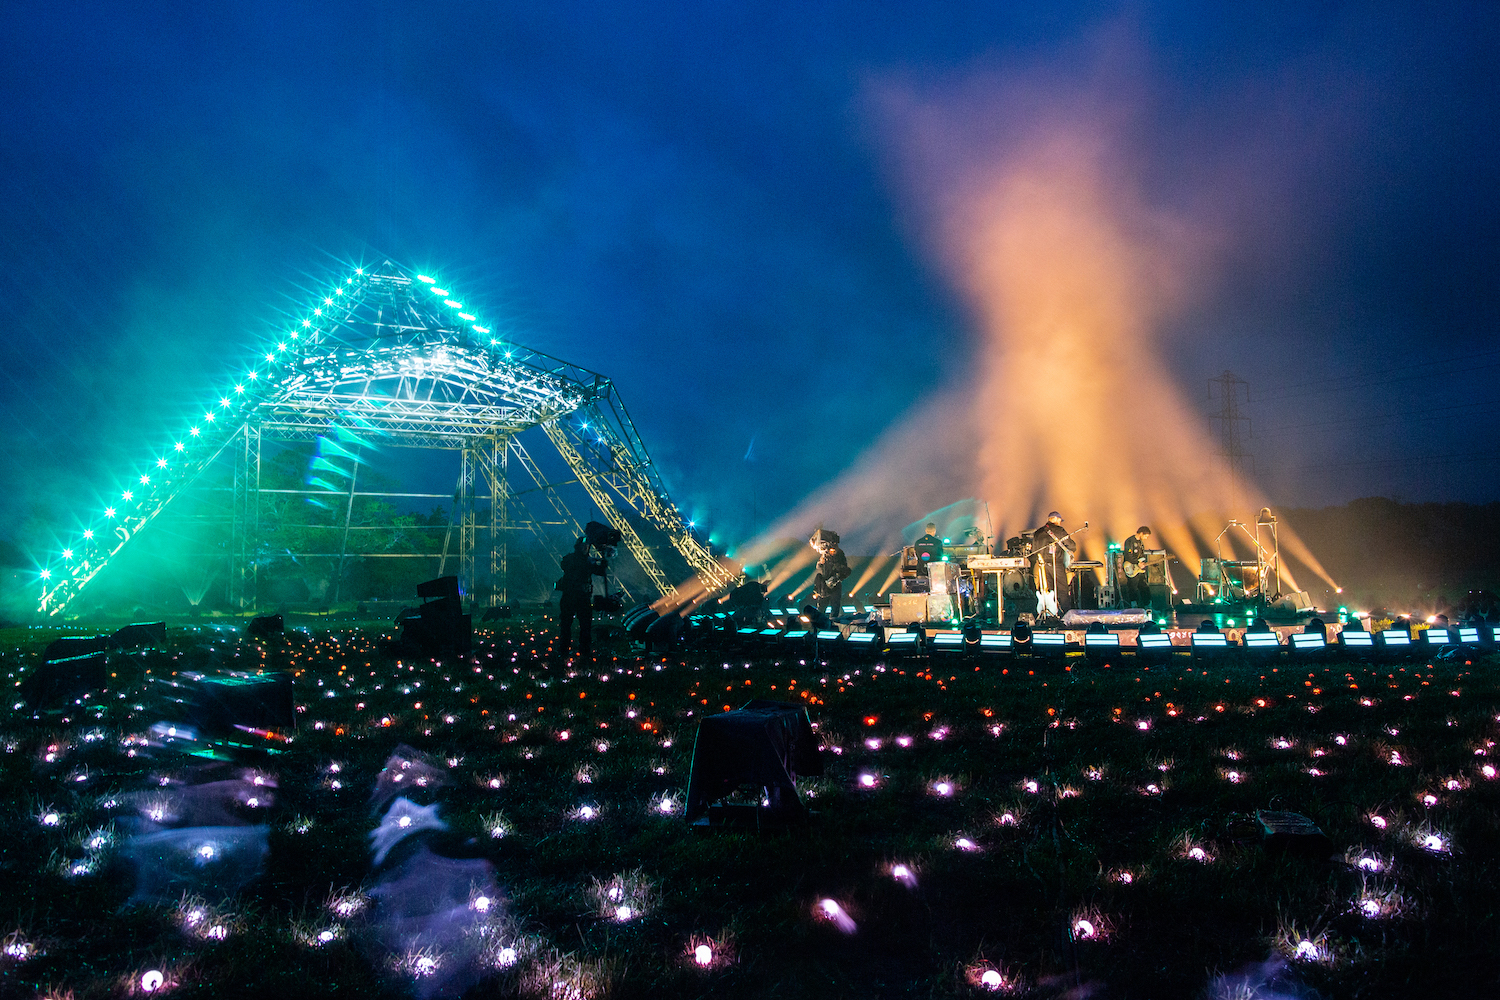 Glastonbury festival's live stream is an exemplary exercise in bringing atmosphere to the screen